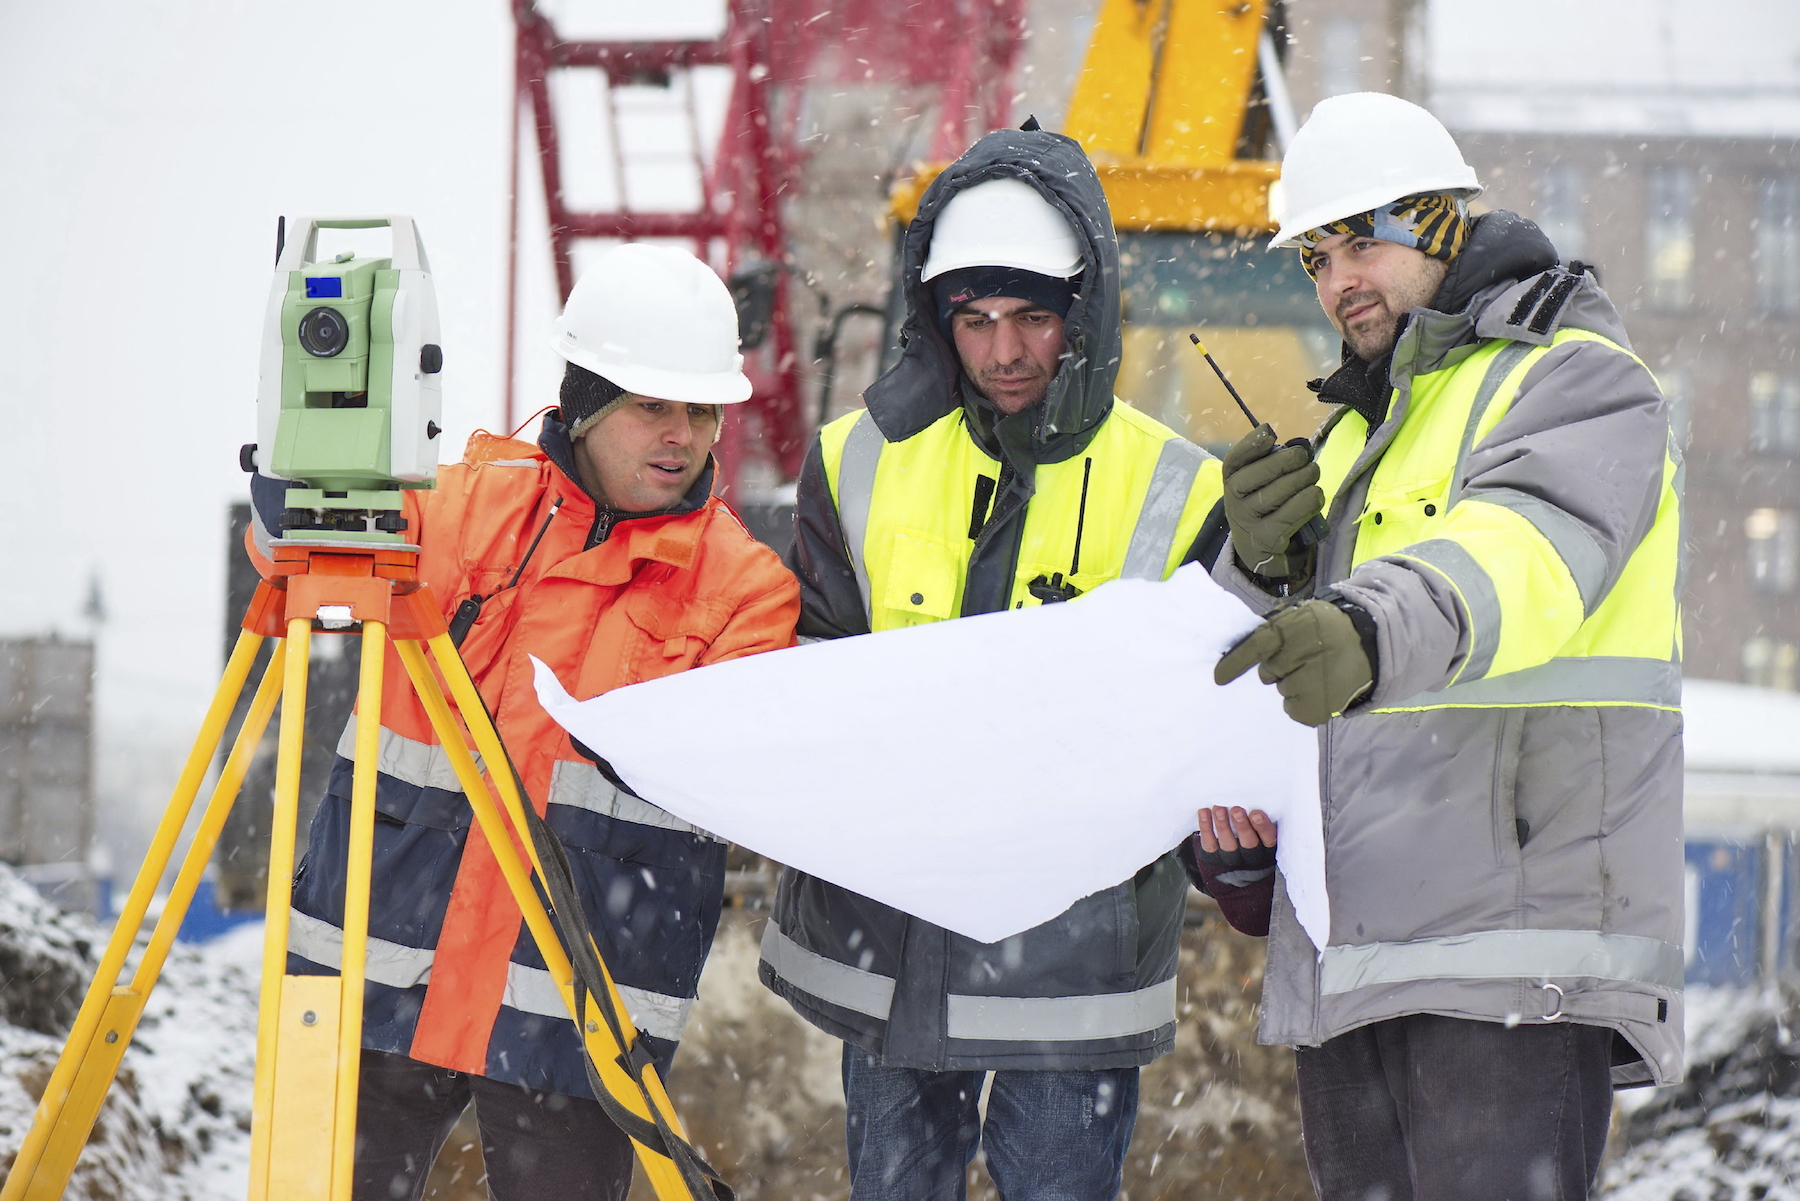 Civil engineers at construction site are inspecting ongoing works according to design drawings in winter conditions